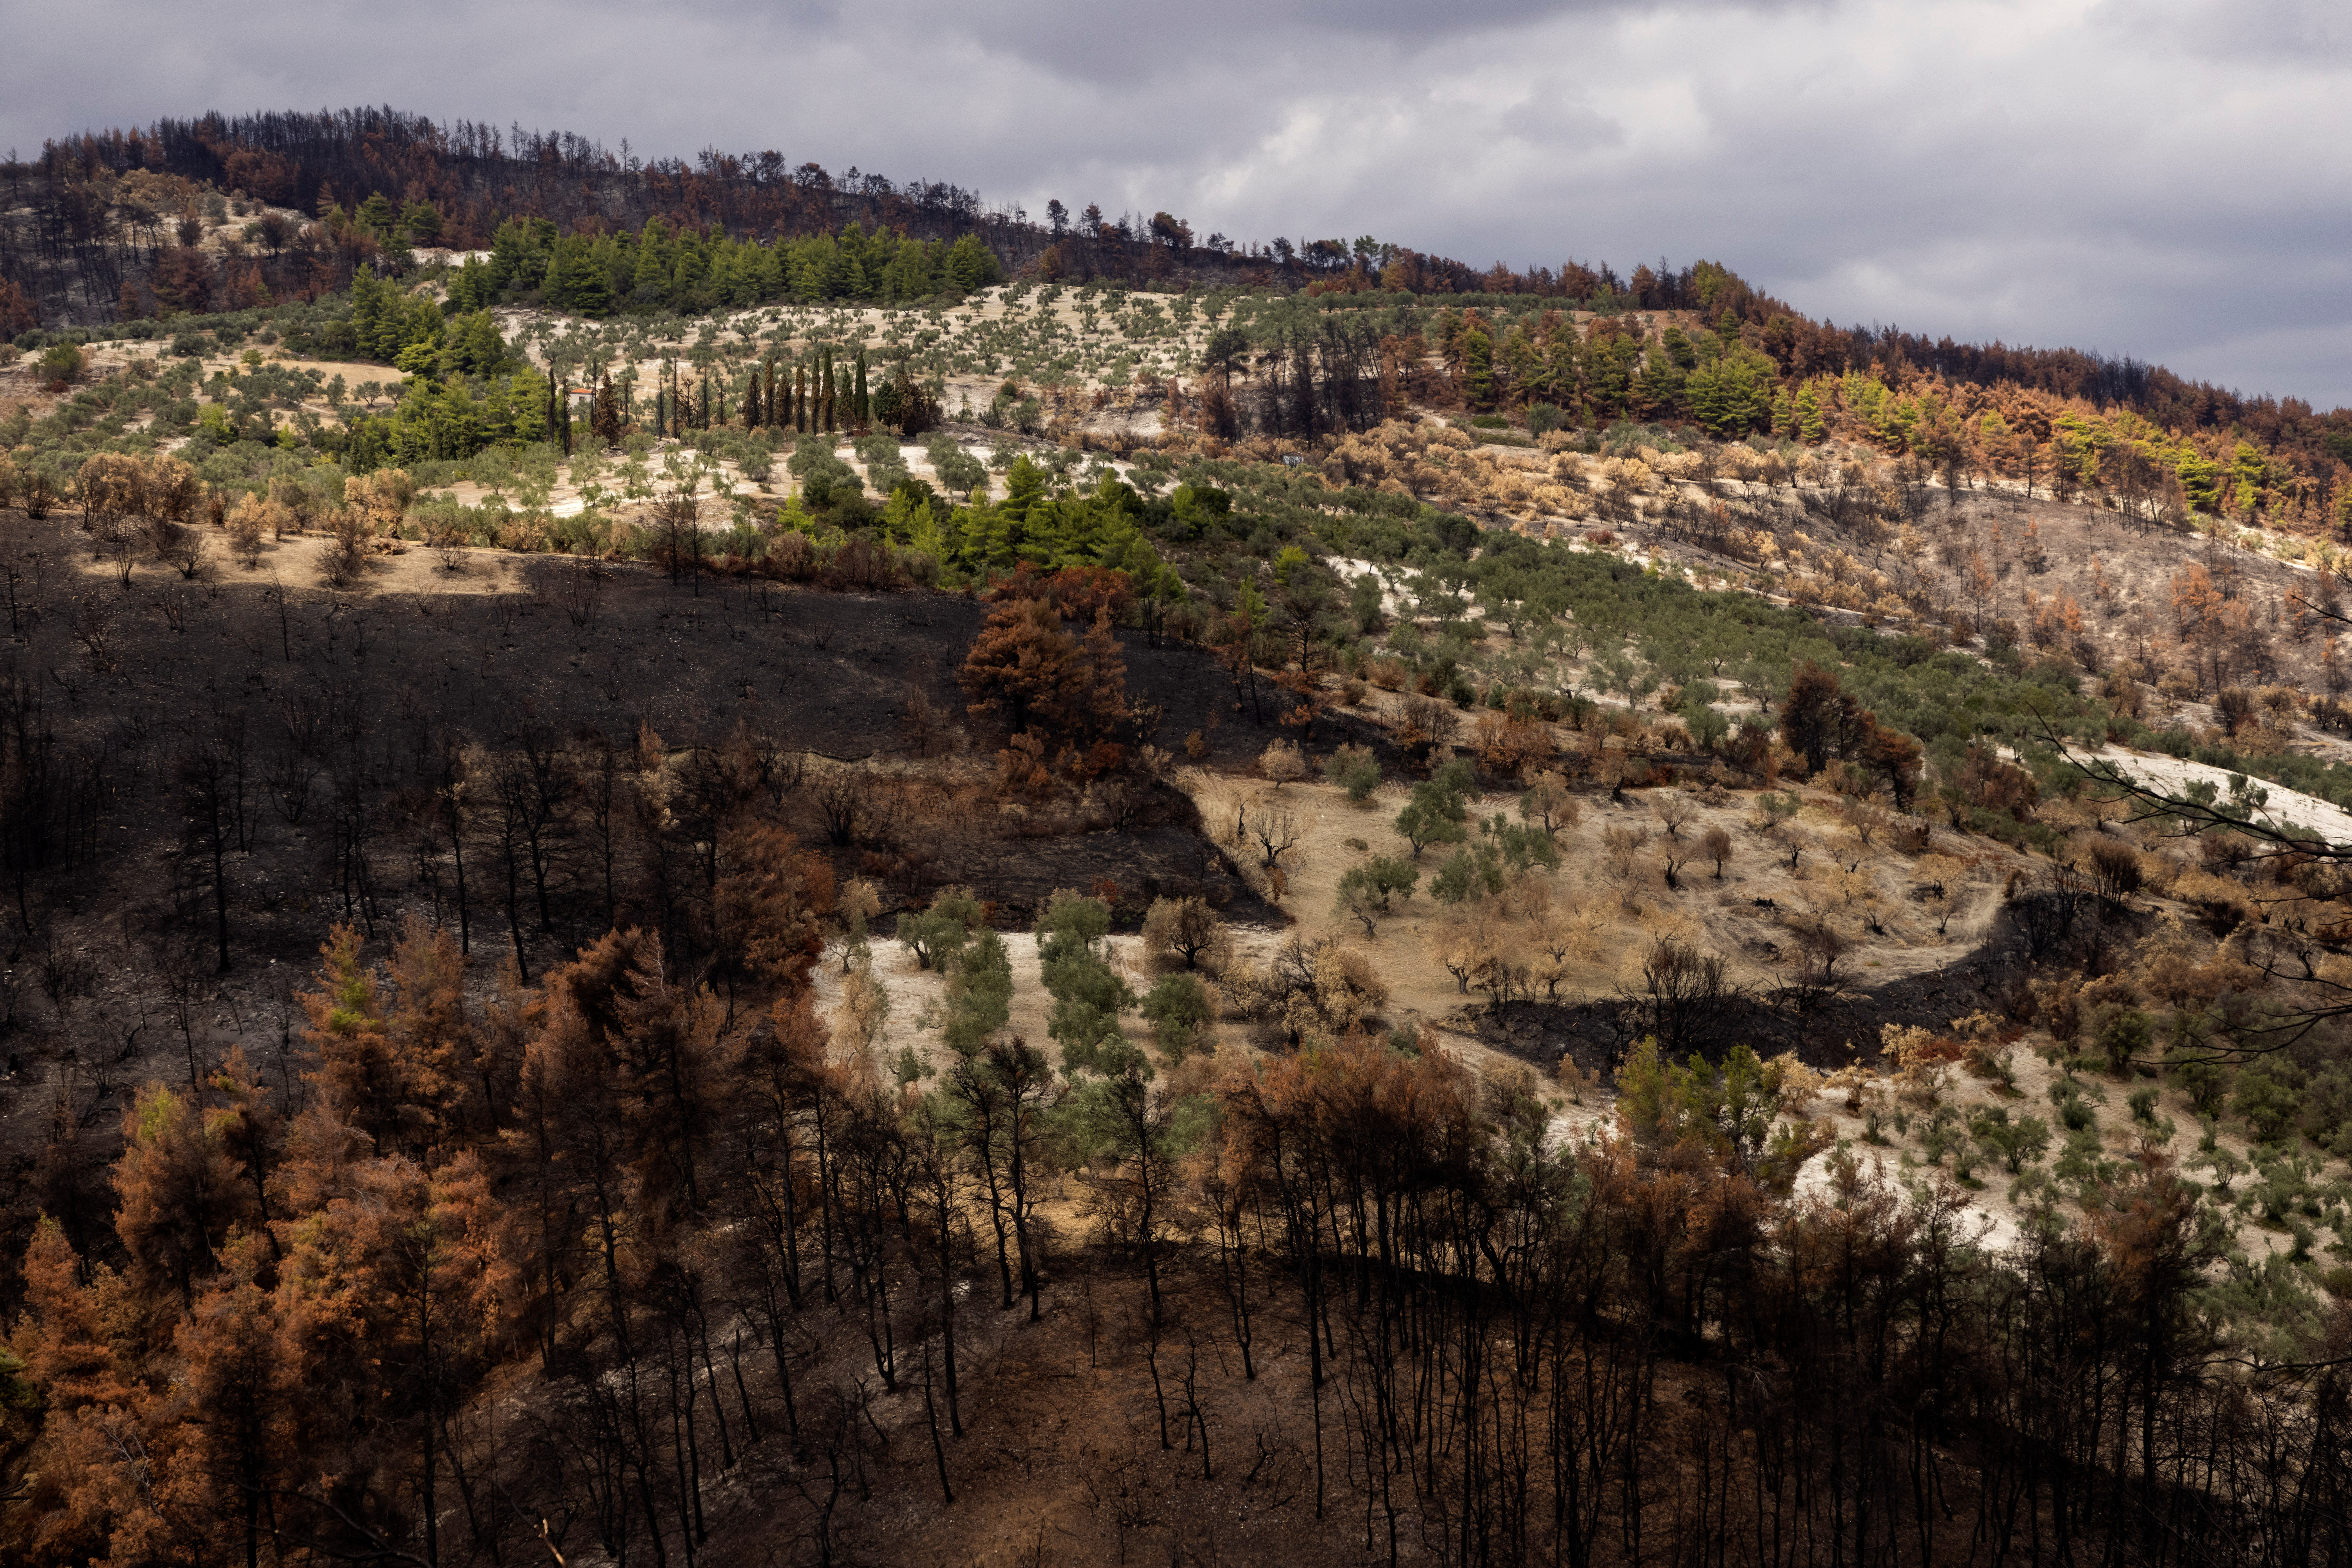 A view shows burnt parts of a forest on the island of Evia, Greece, September 23, 2021. Picture taken September 23, 2021. REUTERS/Alkis Konstantinidis